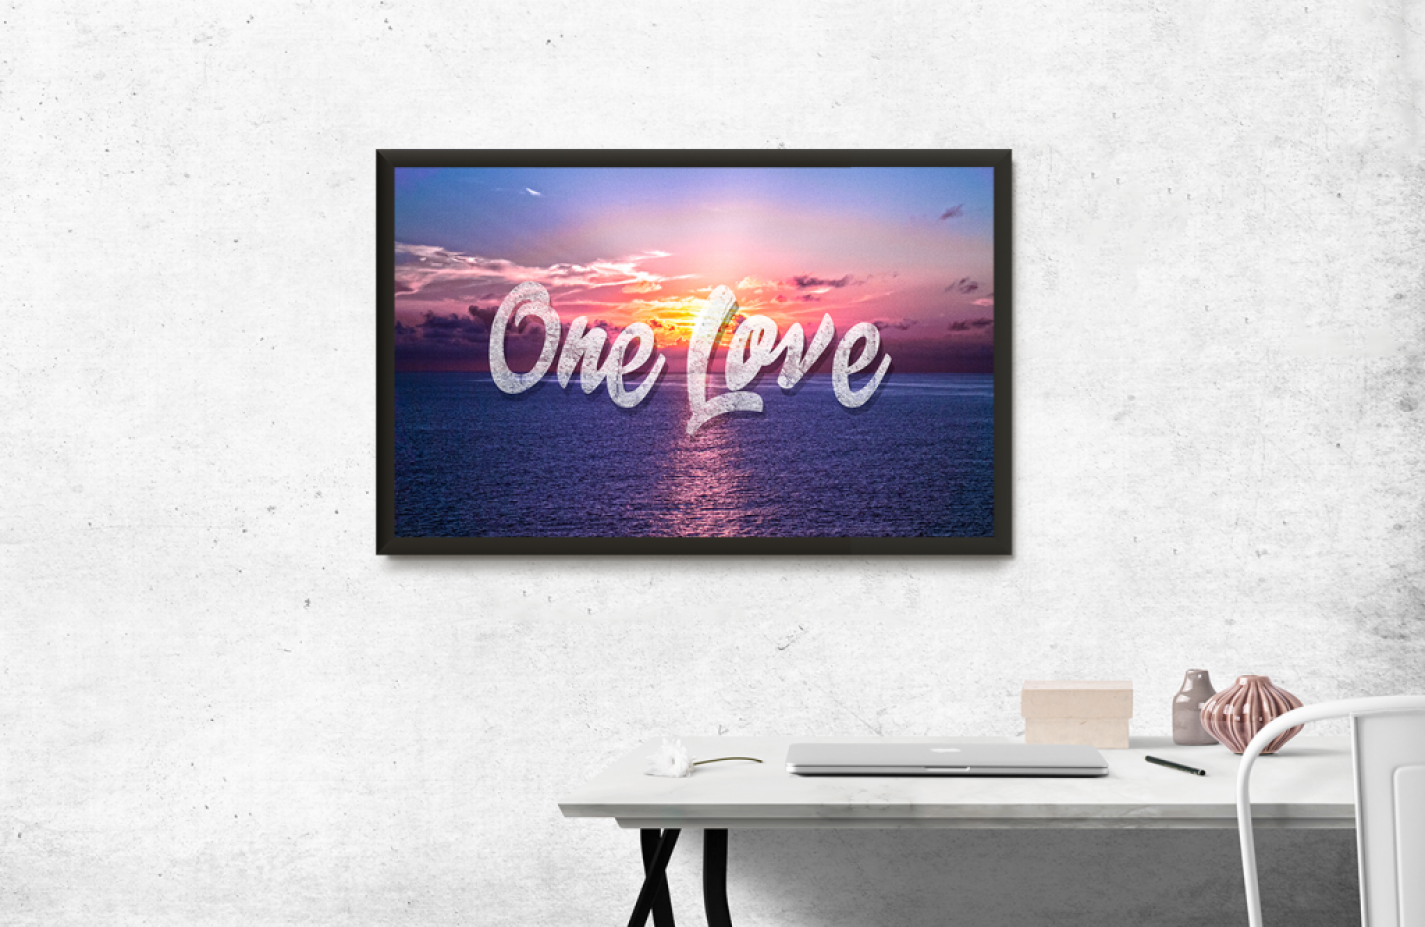 oliver-rios-orios-one-love-banner-adj